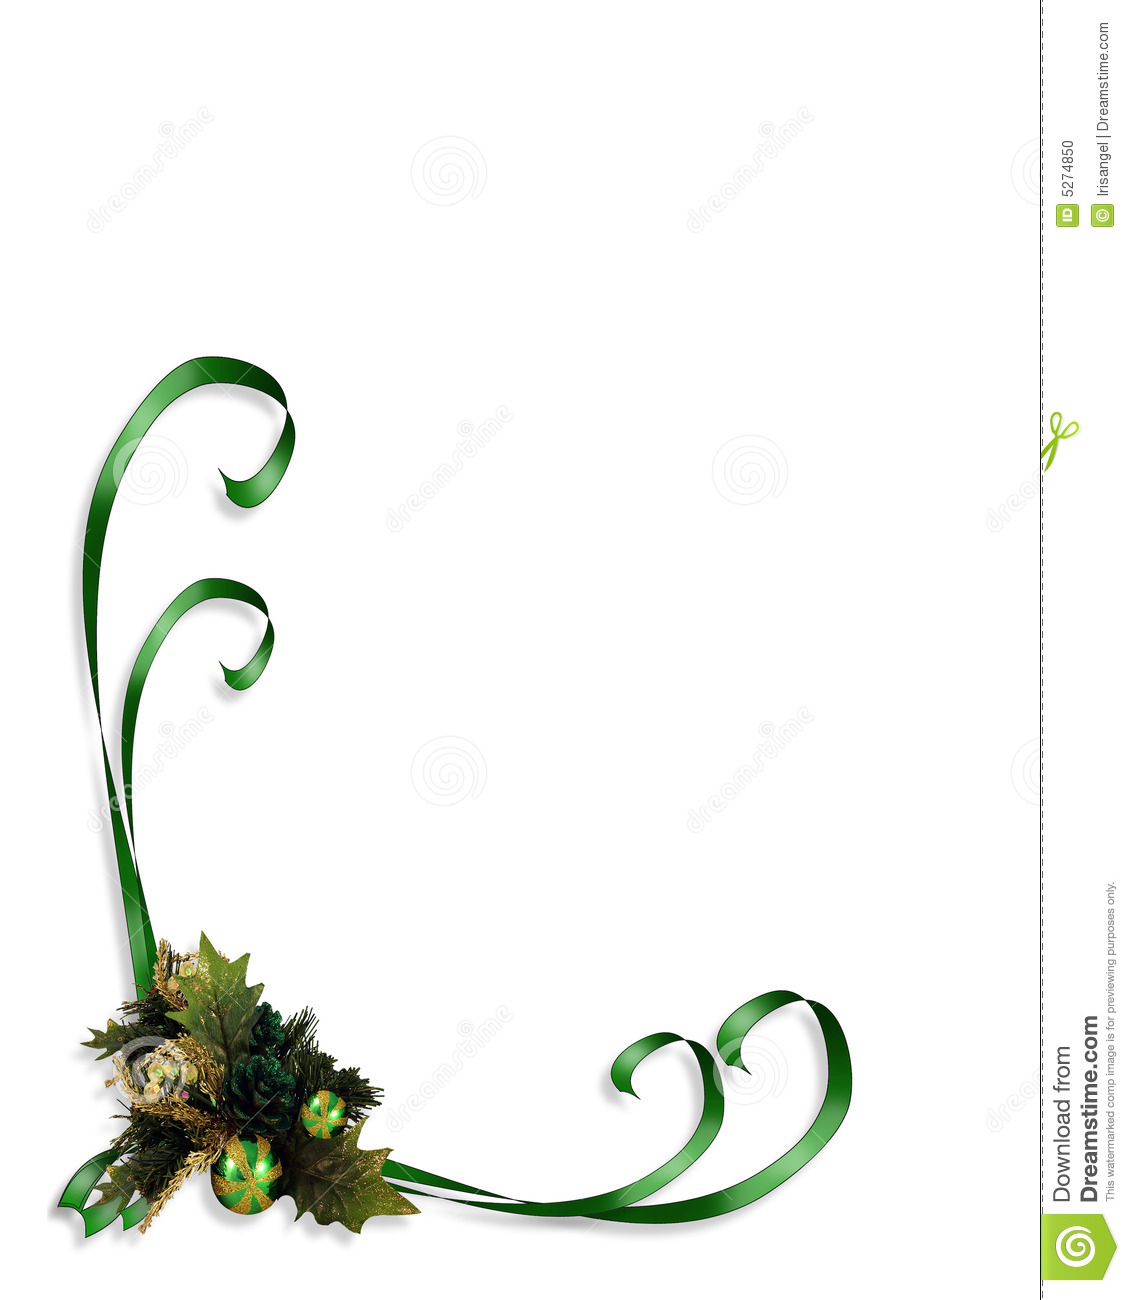 Christmas Border Corner Design Stock Photo - Image: 5274850